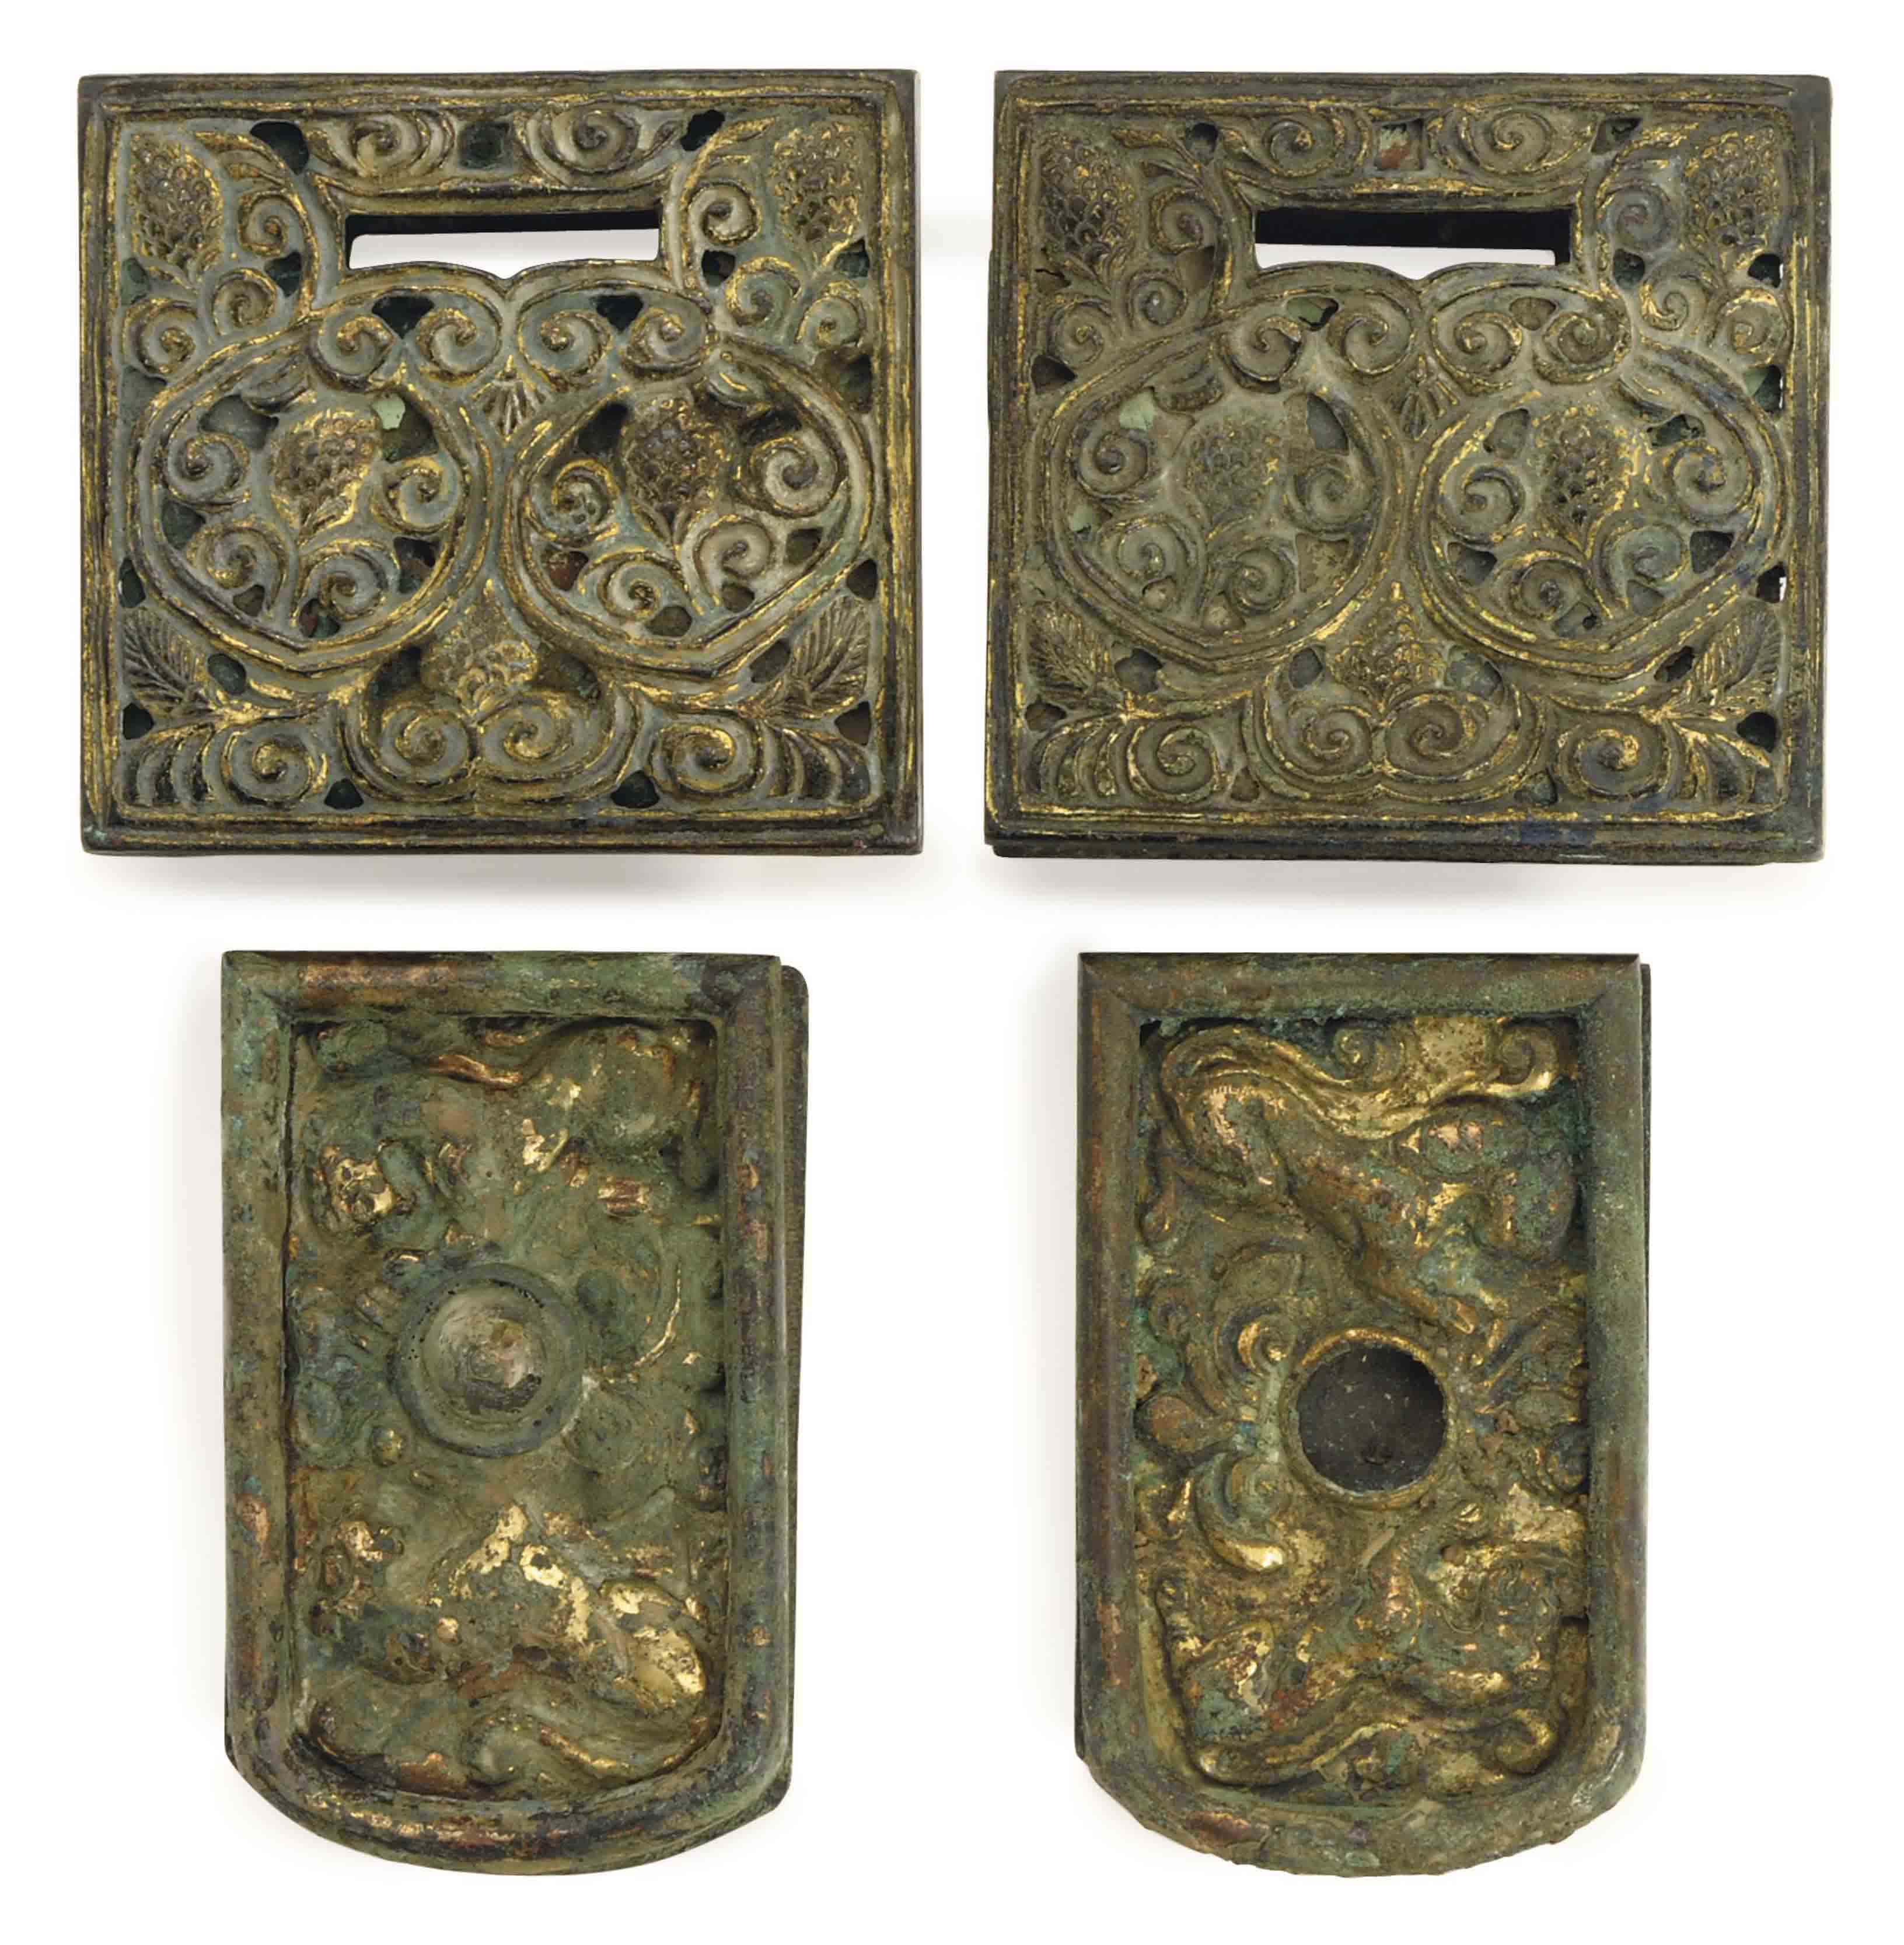 TWO PAIRS OF CHINESE GILT BRONZE BELT FITTINGS,